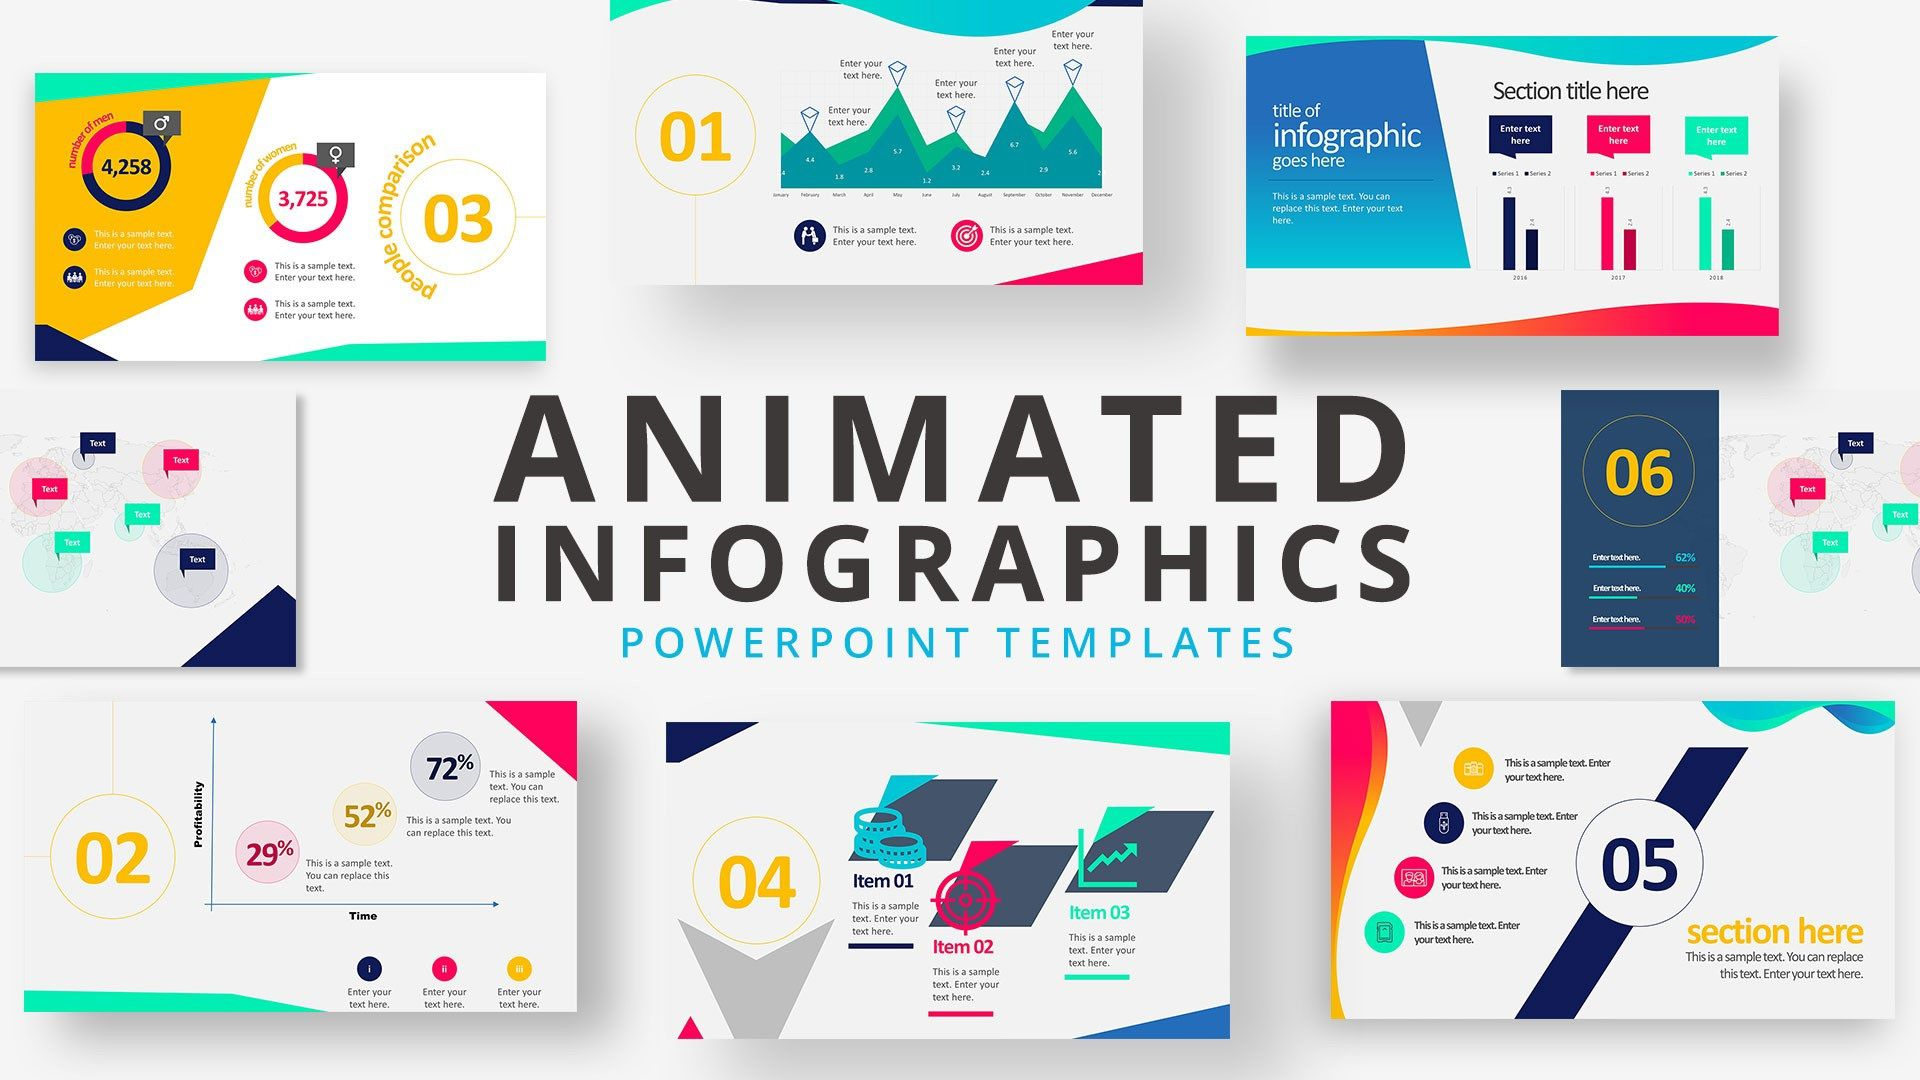 000 Striking Animated Ppt Template Free Download 2018 Picture  Powerpoint 3dFull